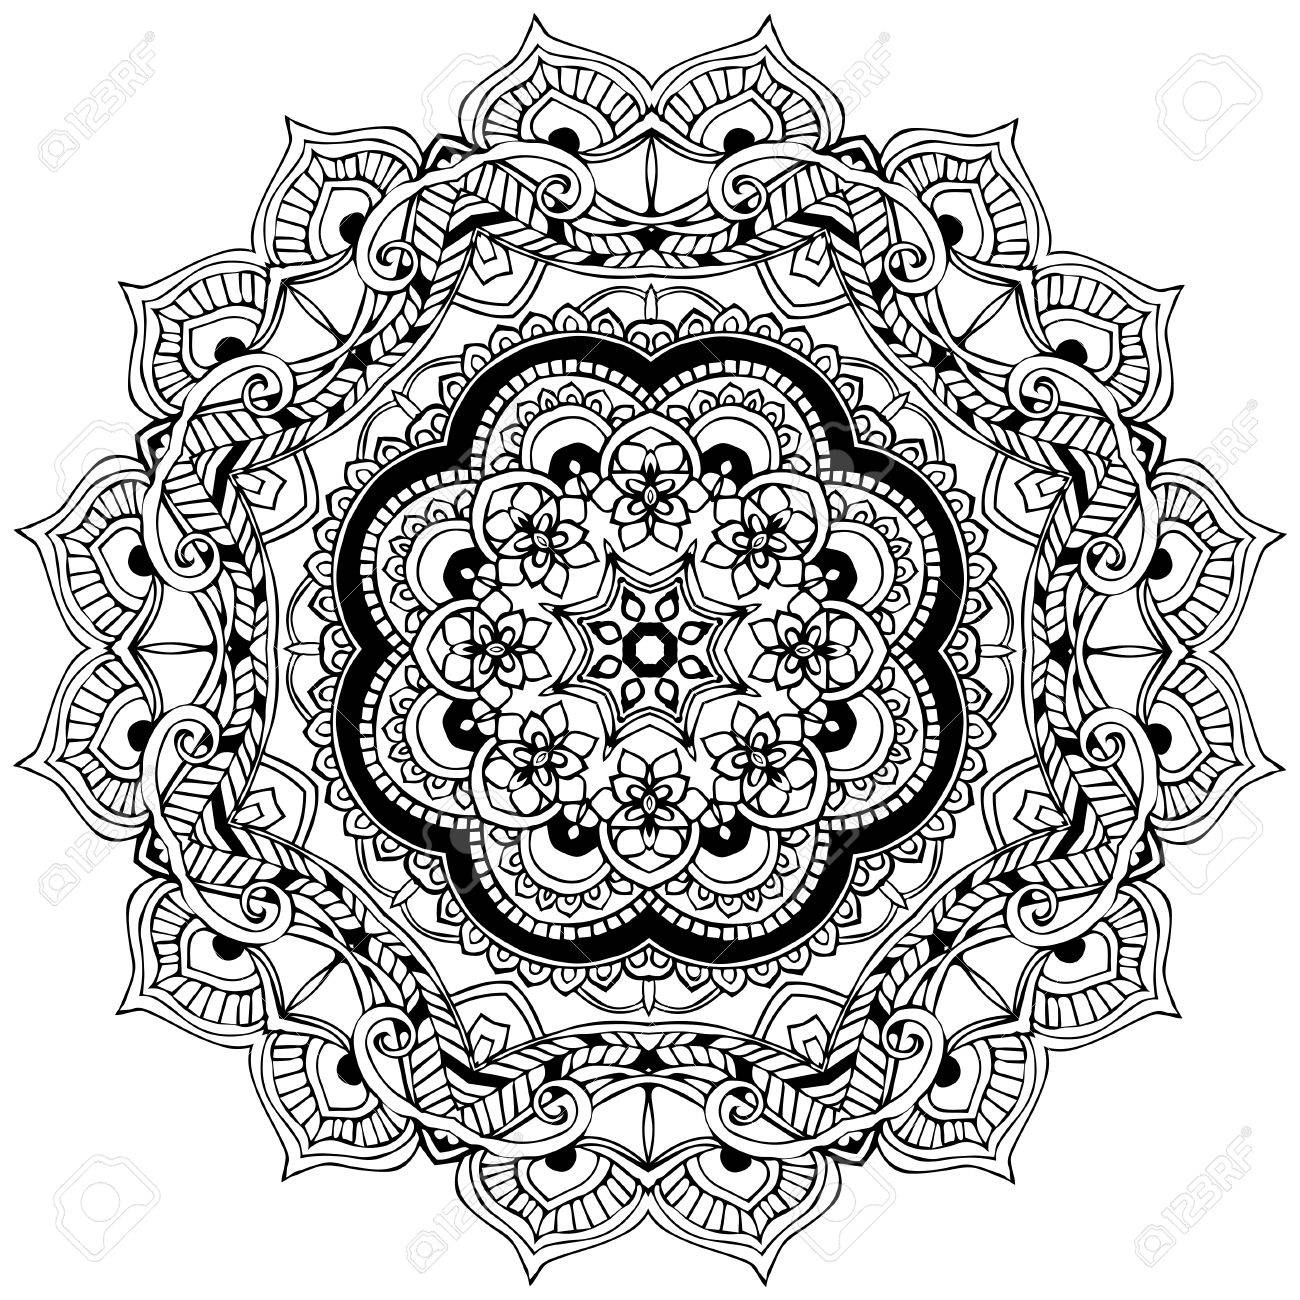 ornament black white card with mandala geometric circle element